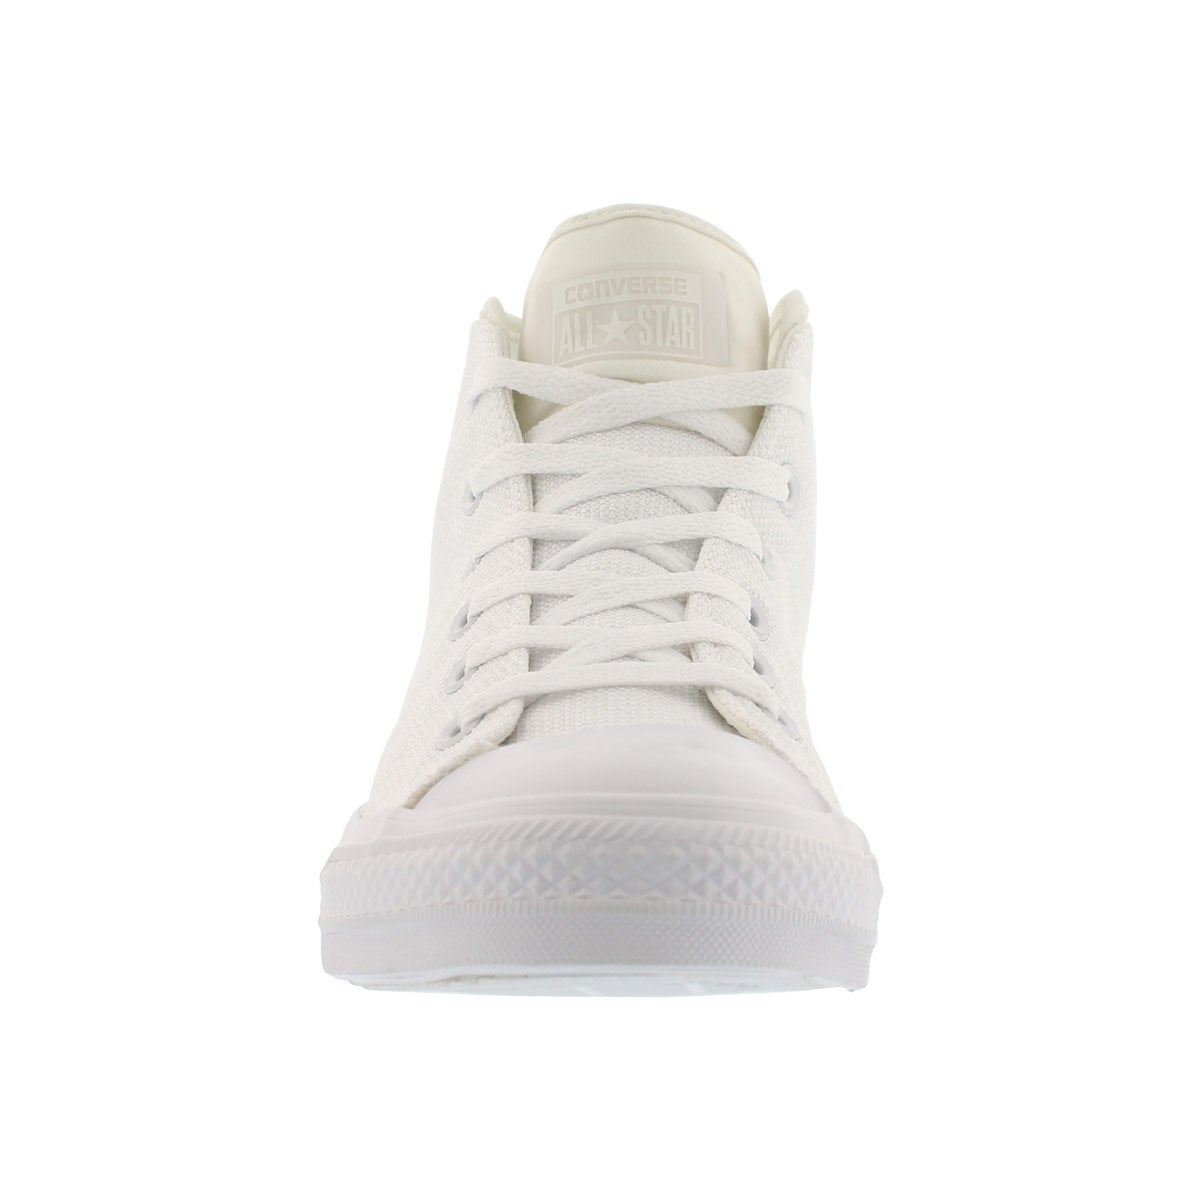 Mns CT A/S Syde Street white sneaker